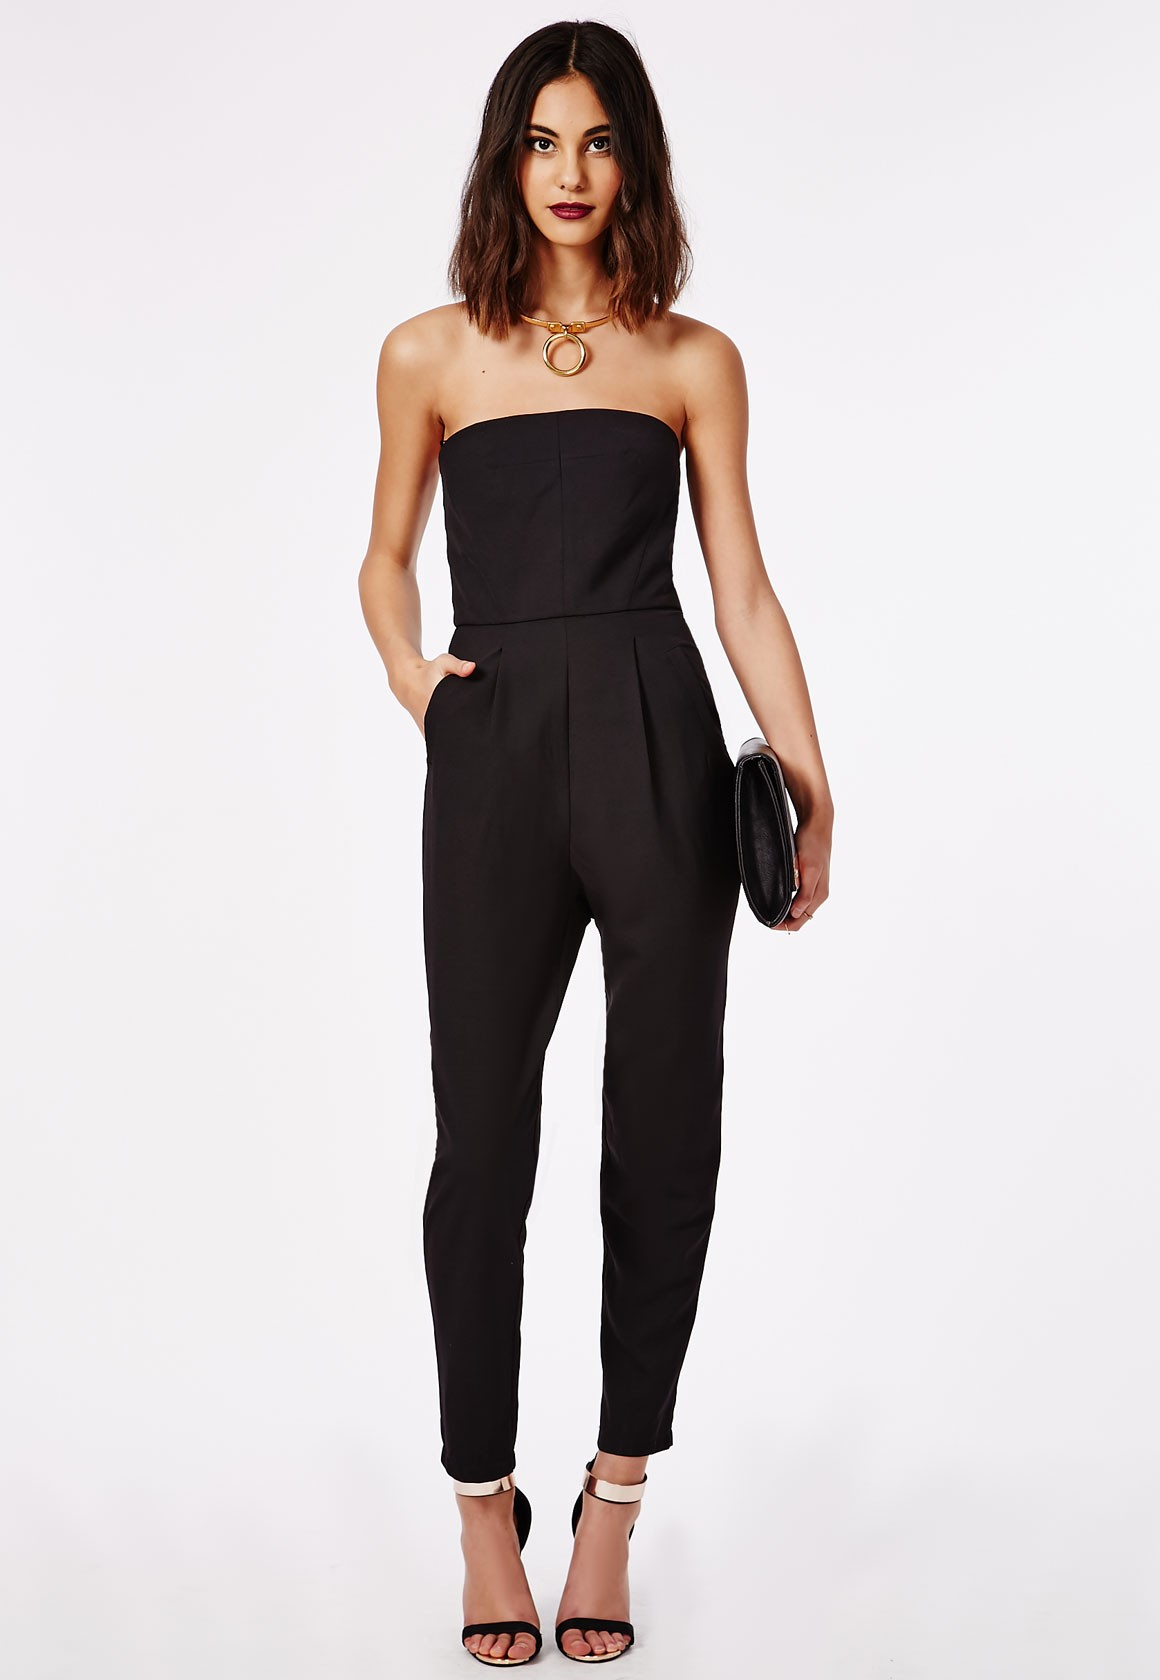 Bandeau Jumpsuit – The Best Looks to Try